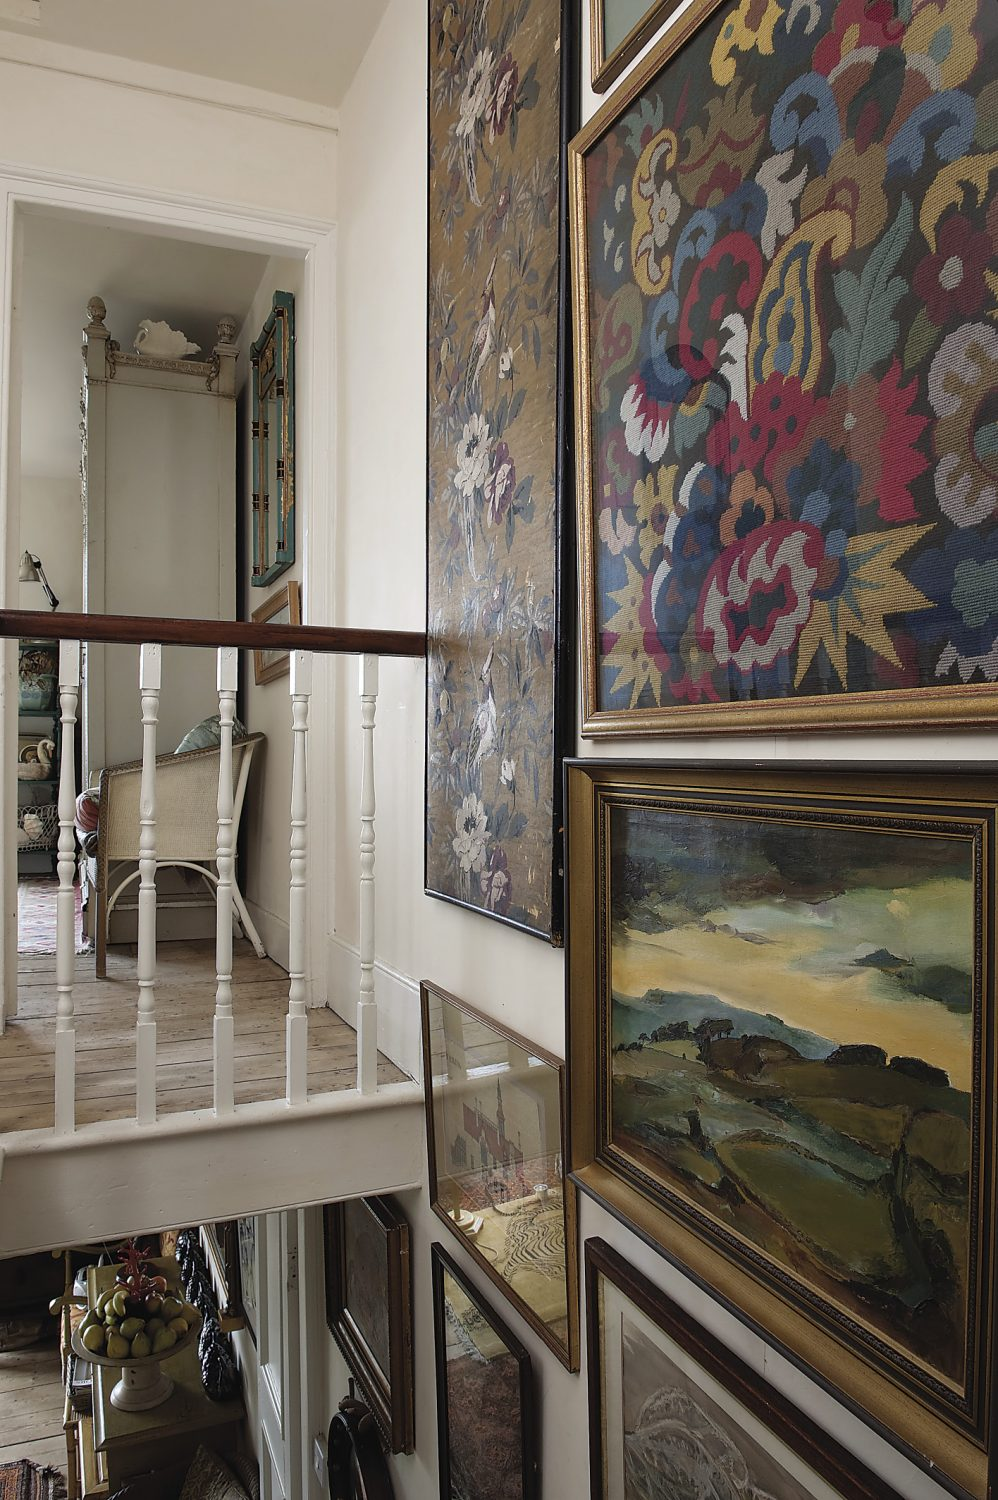 The walls by the staircase are covered in paintings, drawings and fabric panels